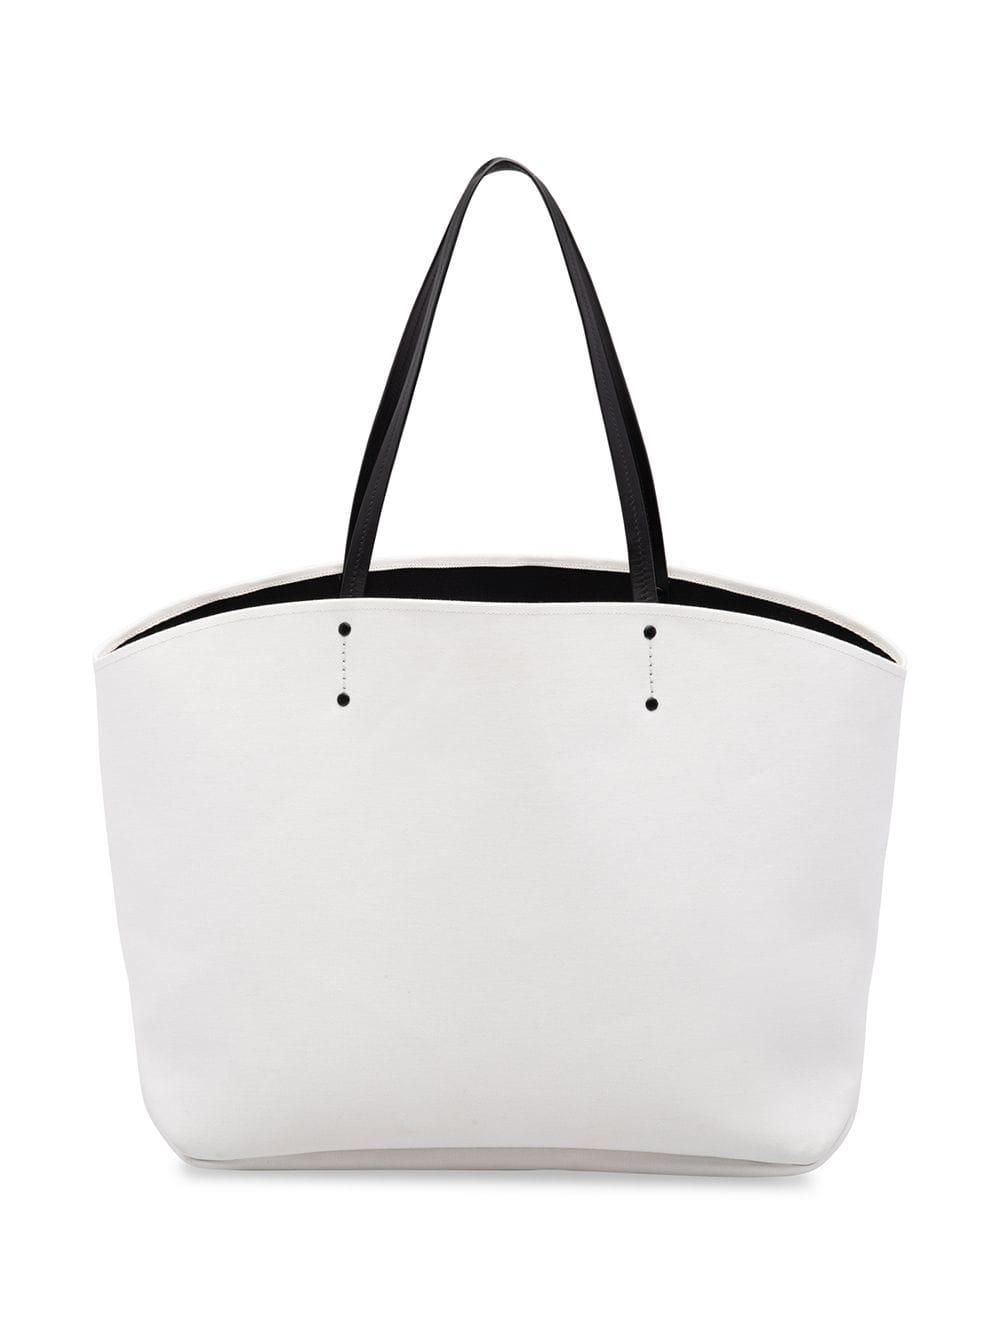 47fc034775c4 Prada Large Canvas Logo Tote in White - Lyst